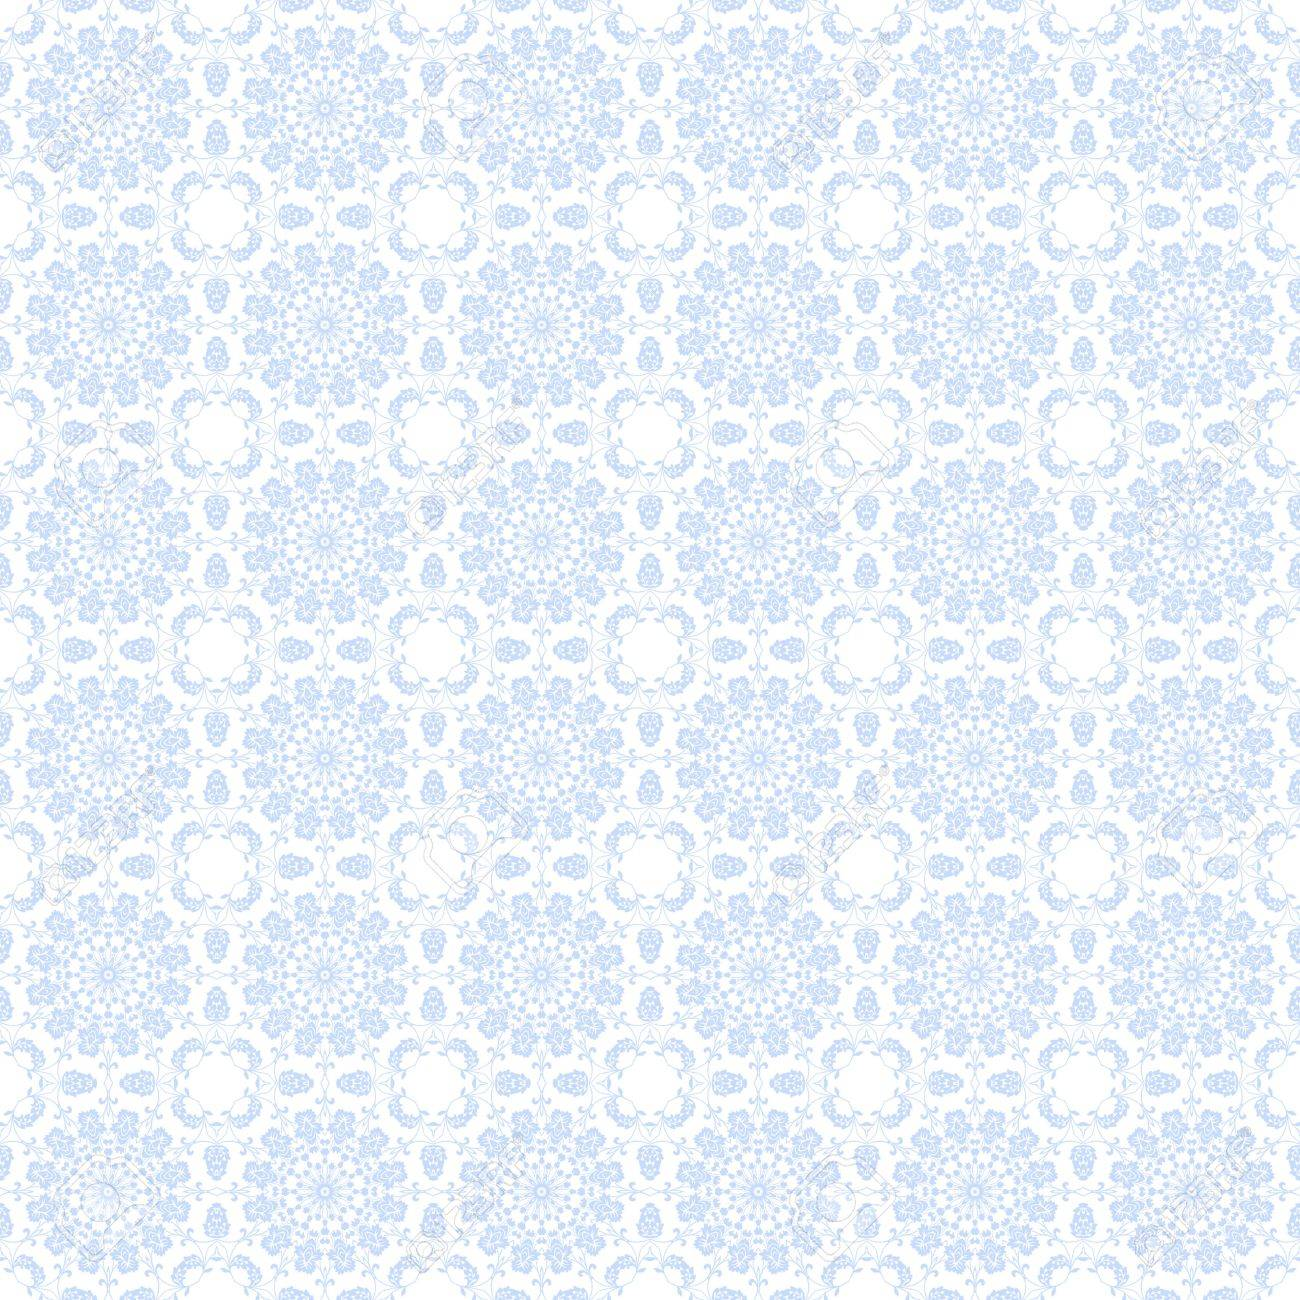 Seamless Pale Blue Floral Kaleidoscope Background Wallpaper Stock